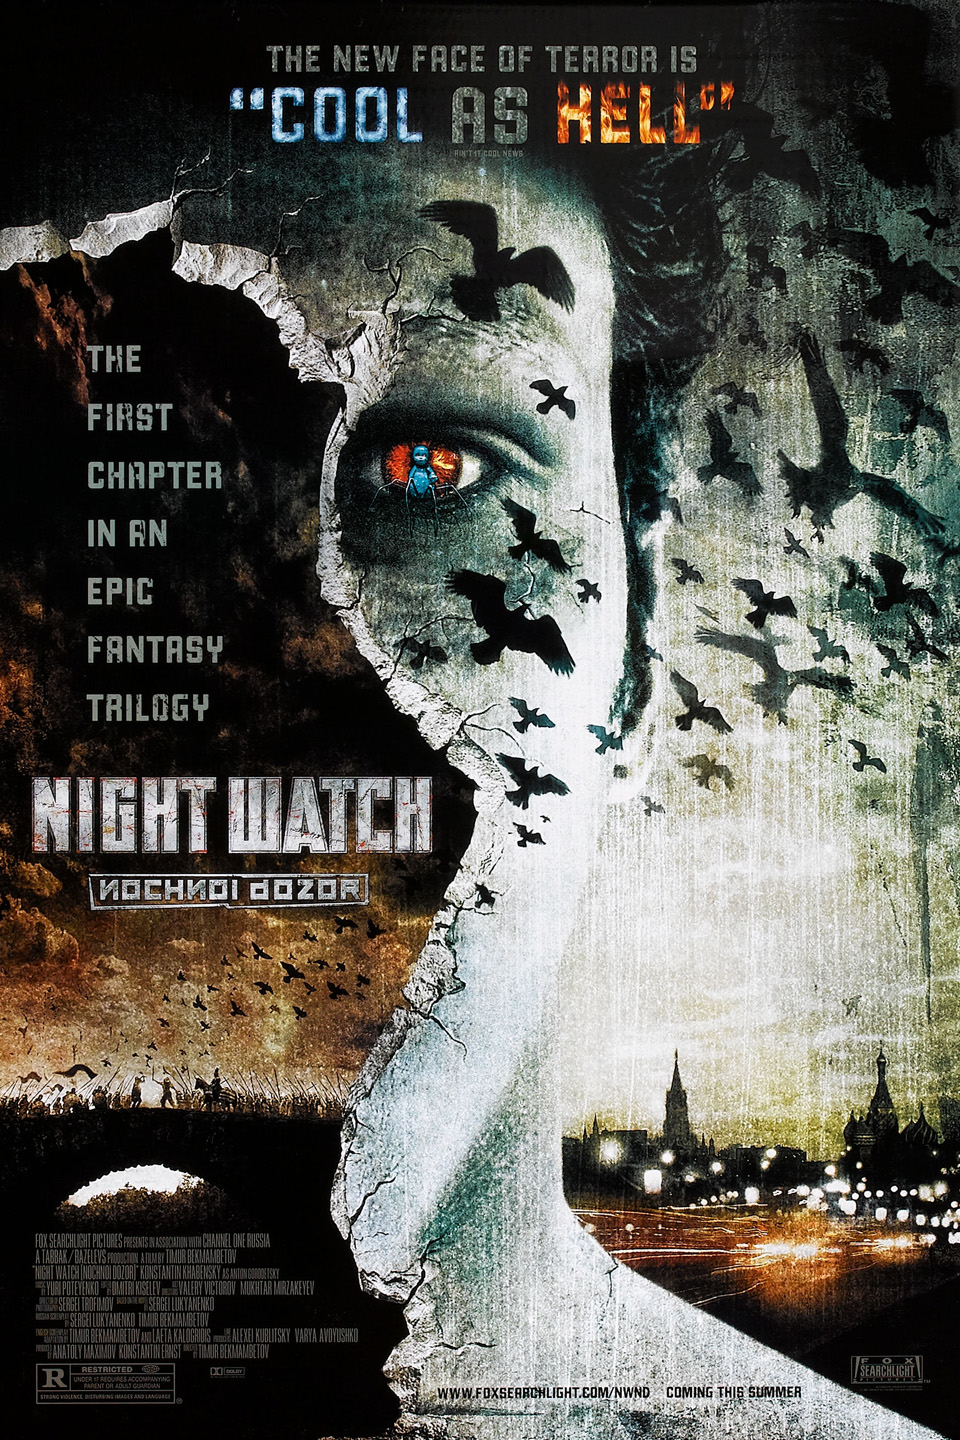 Night Watch-Nochnoy dozor